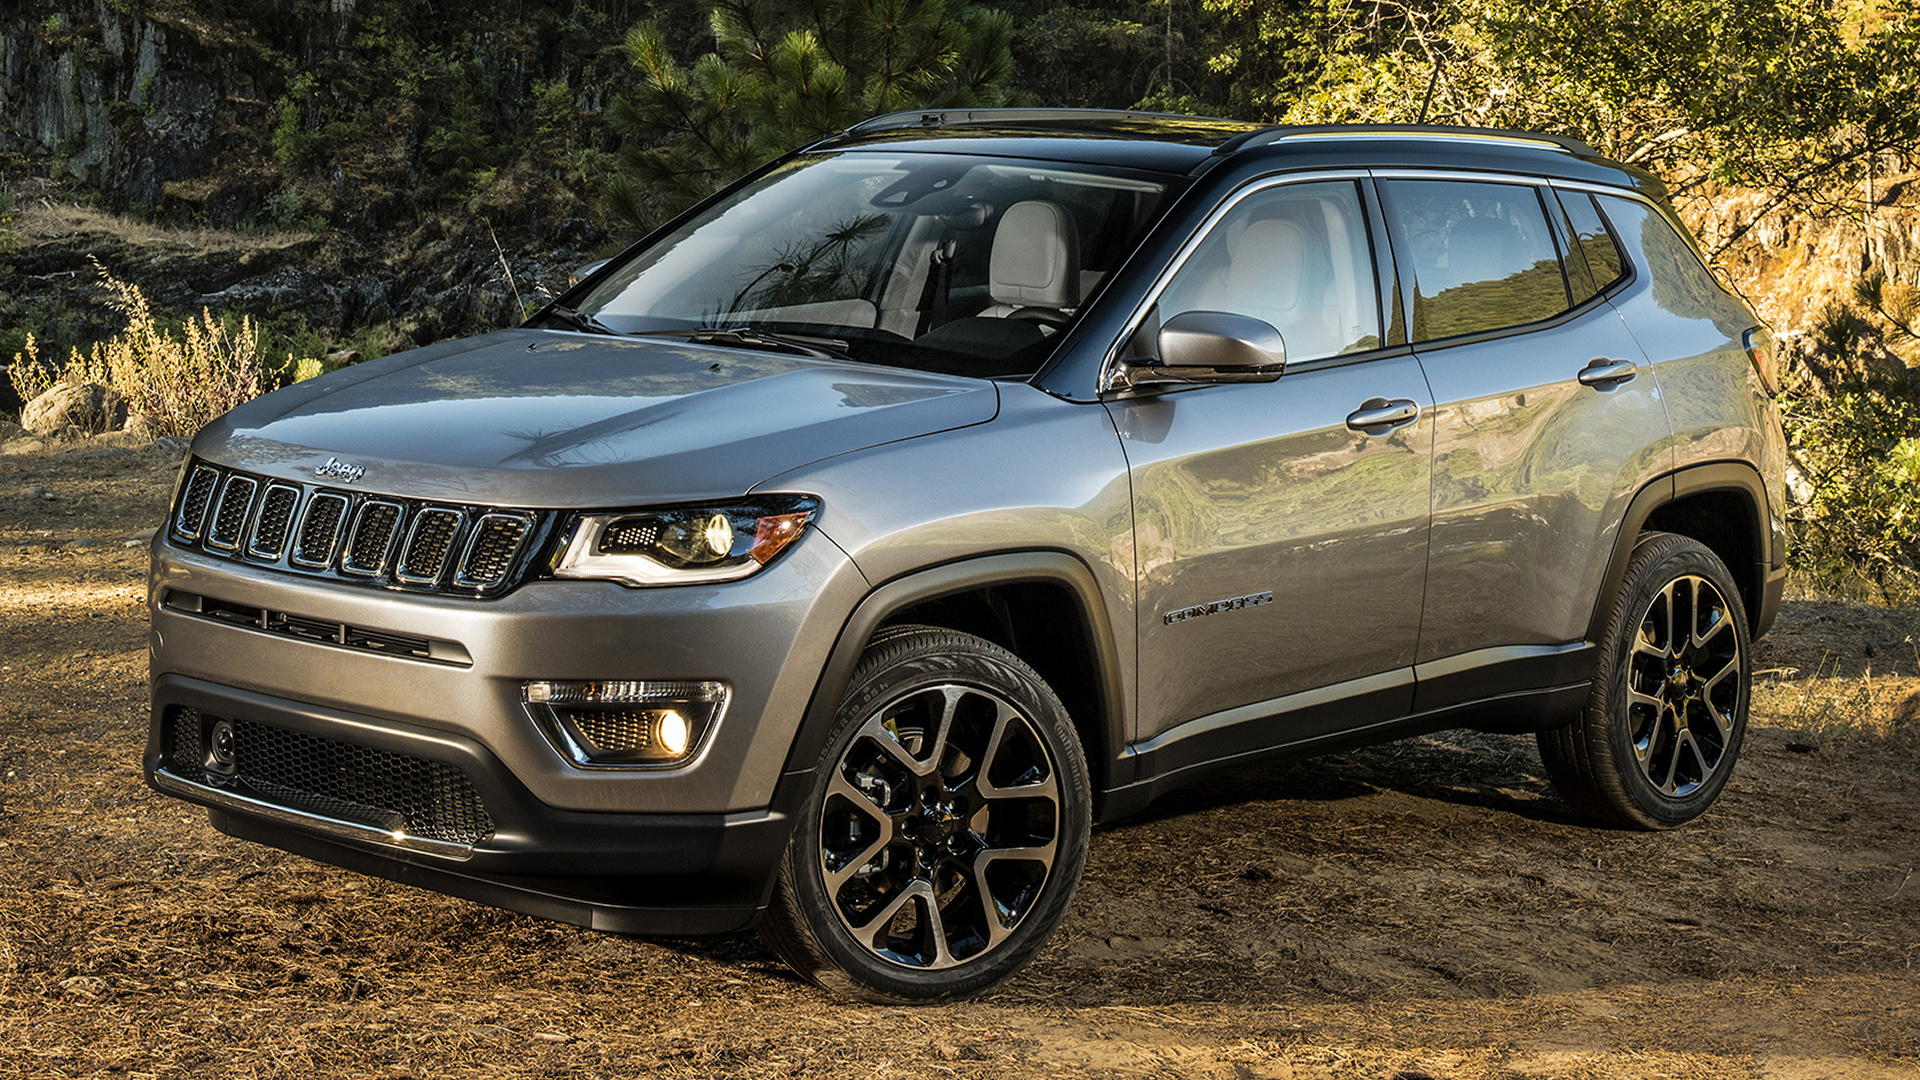 jeep compass limited 2017 wallpapers and hd images car pixel. Black Bedroom Furniture Sets. Home Design Ideas